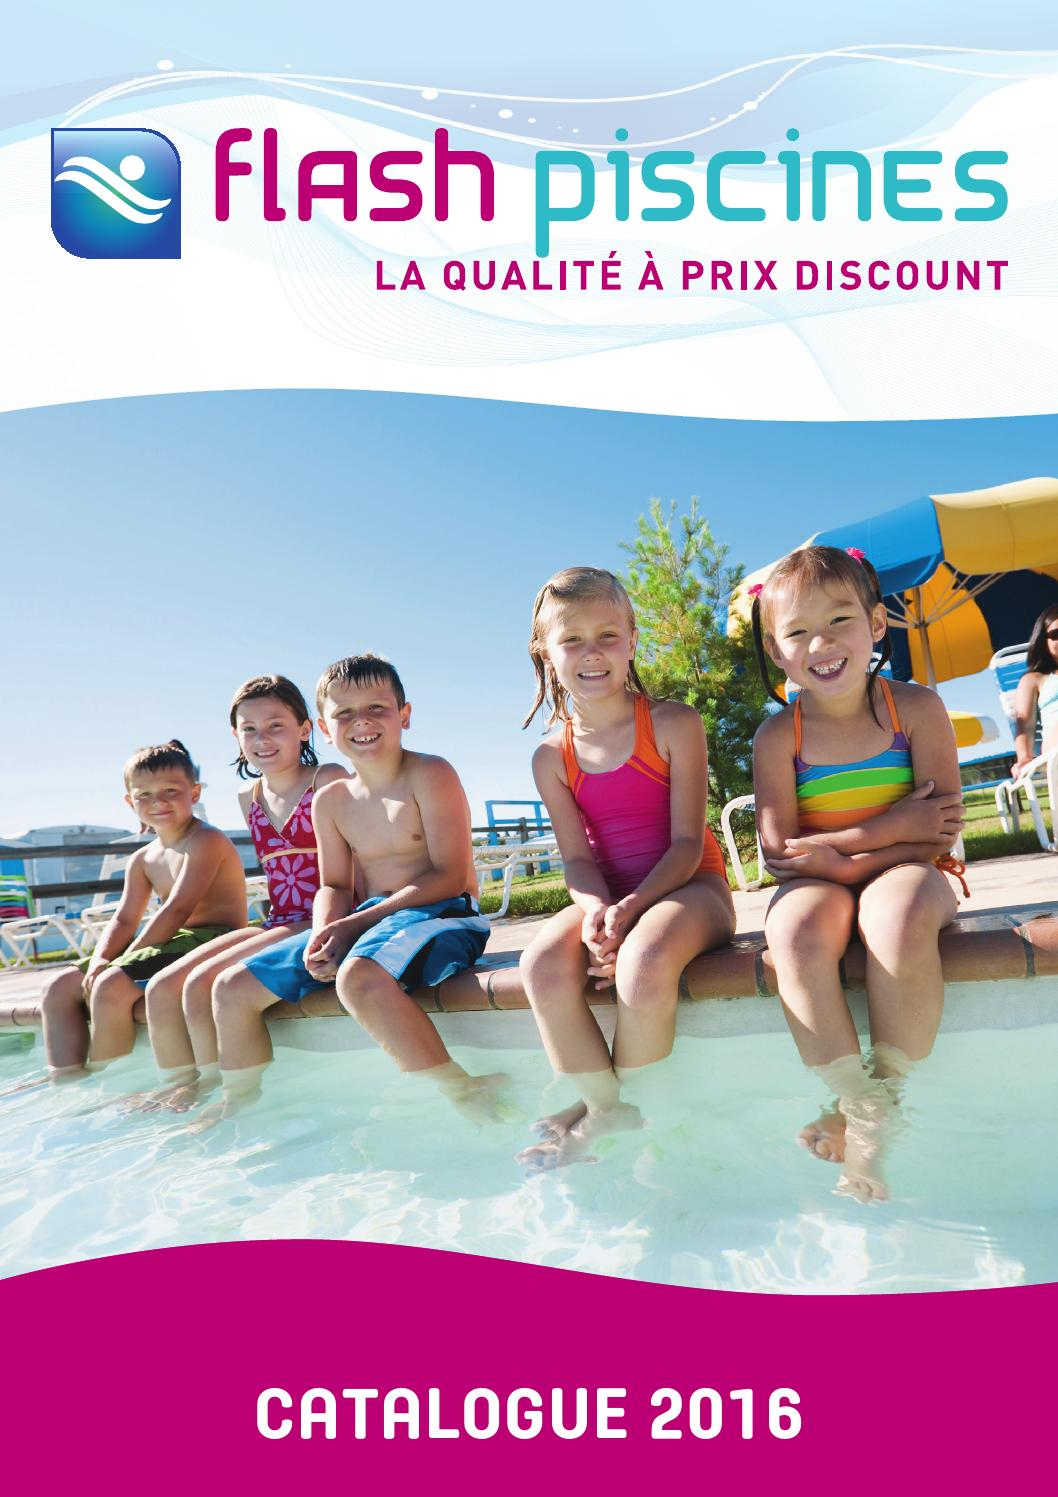 Bois Et Chiffons Catalogue 2016 Catalogue Flash Piscine 2016 By Flash Piscine Issuu